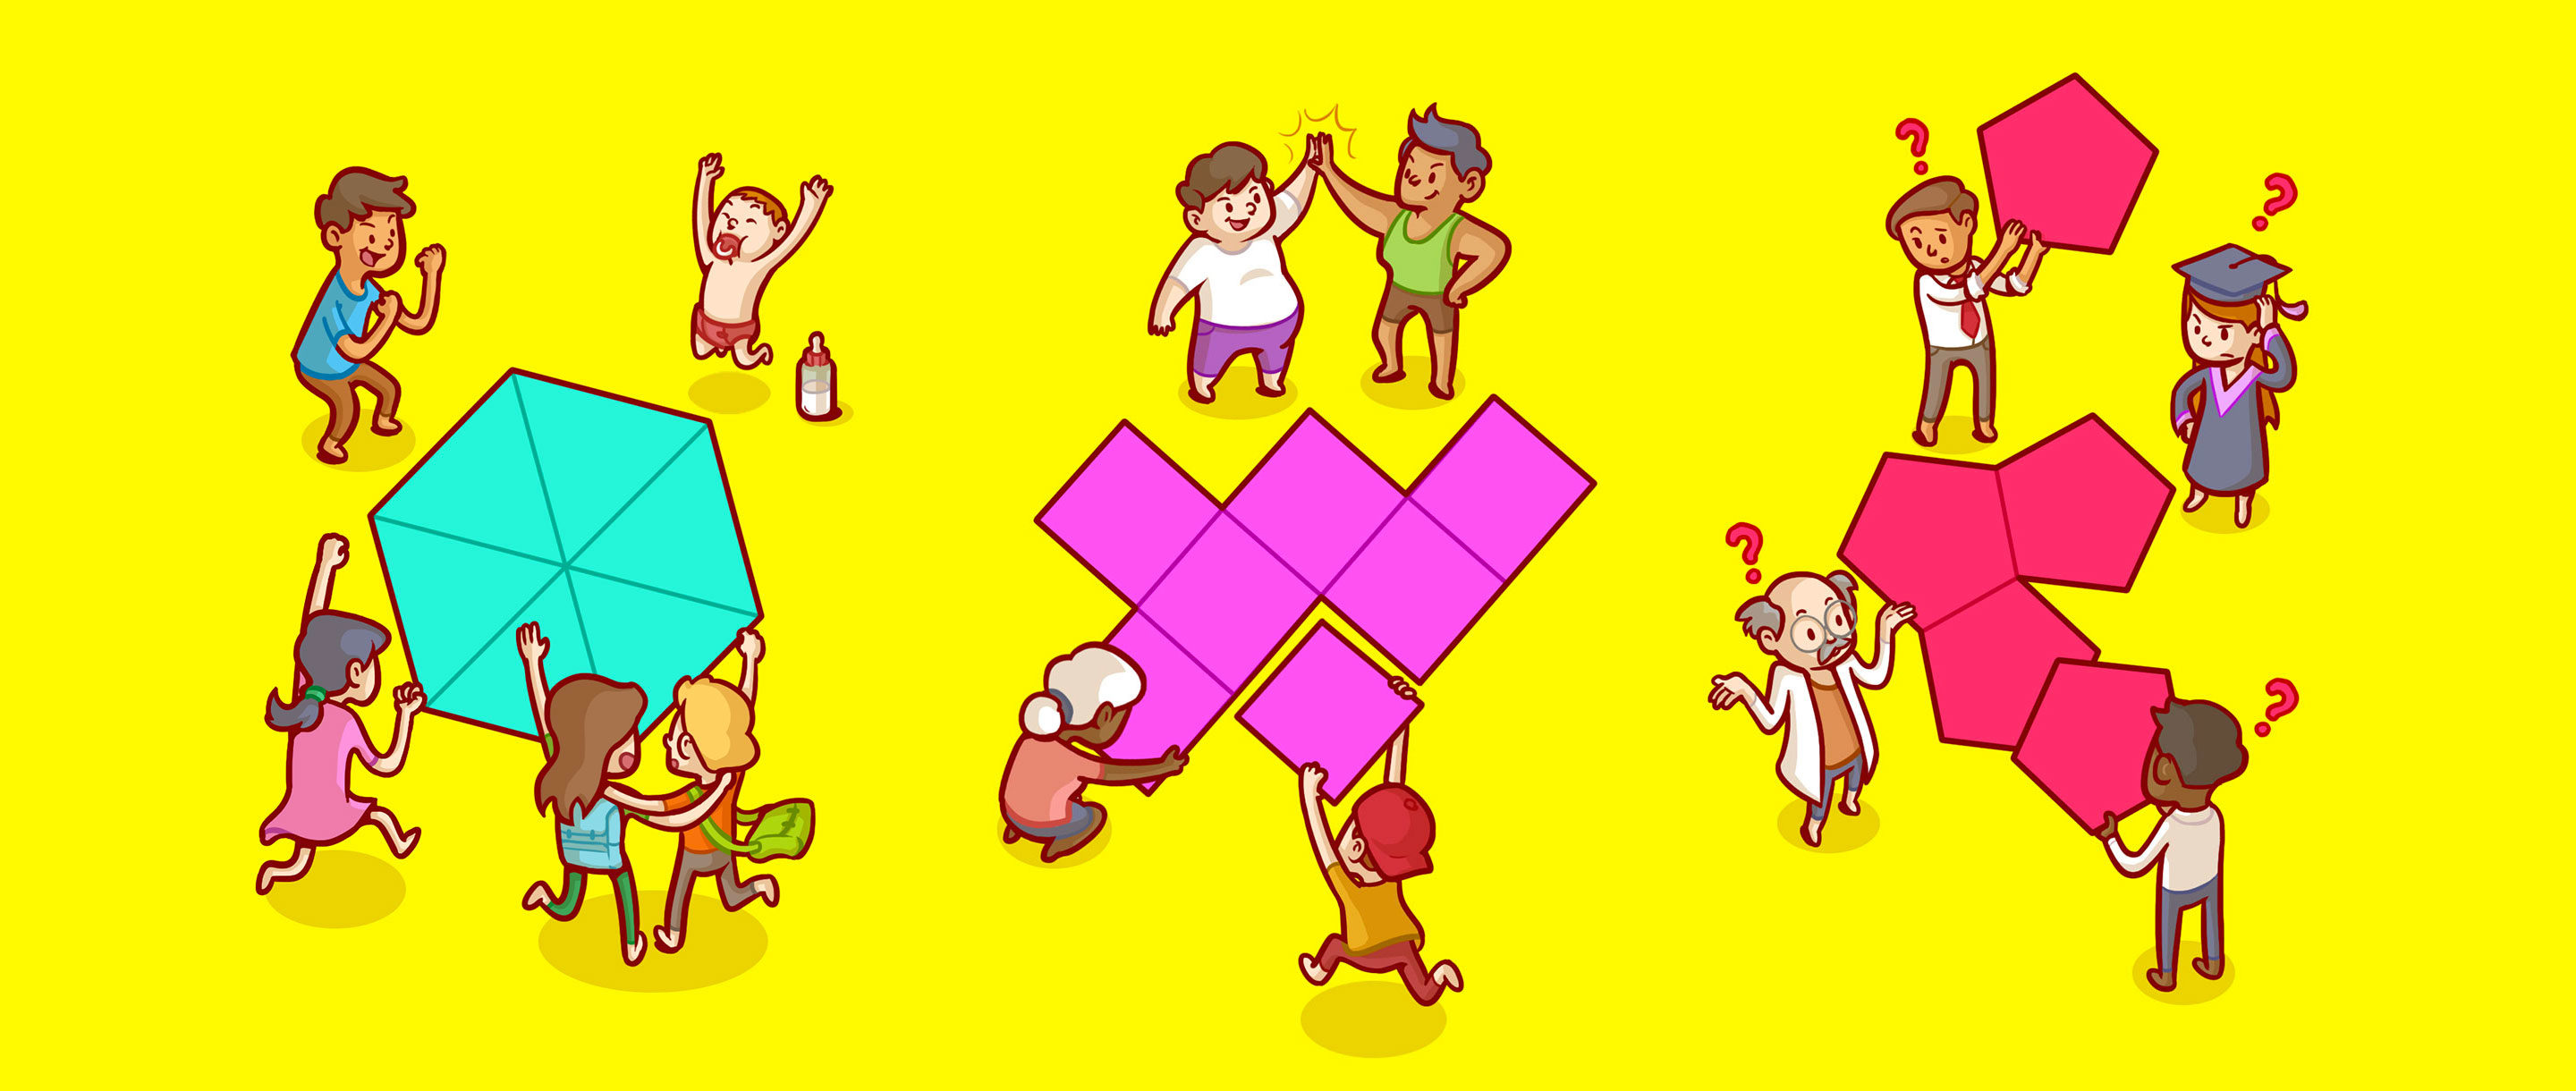 Triangles fit effortlessly together, as do squares. When it comes to pentagons, what gives?